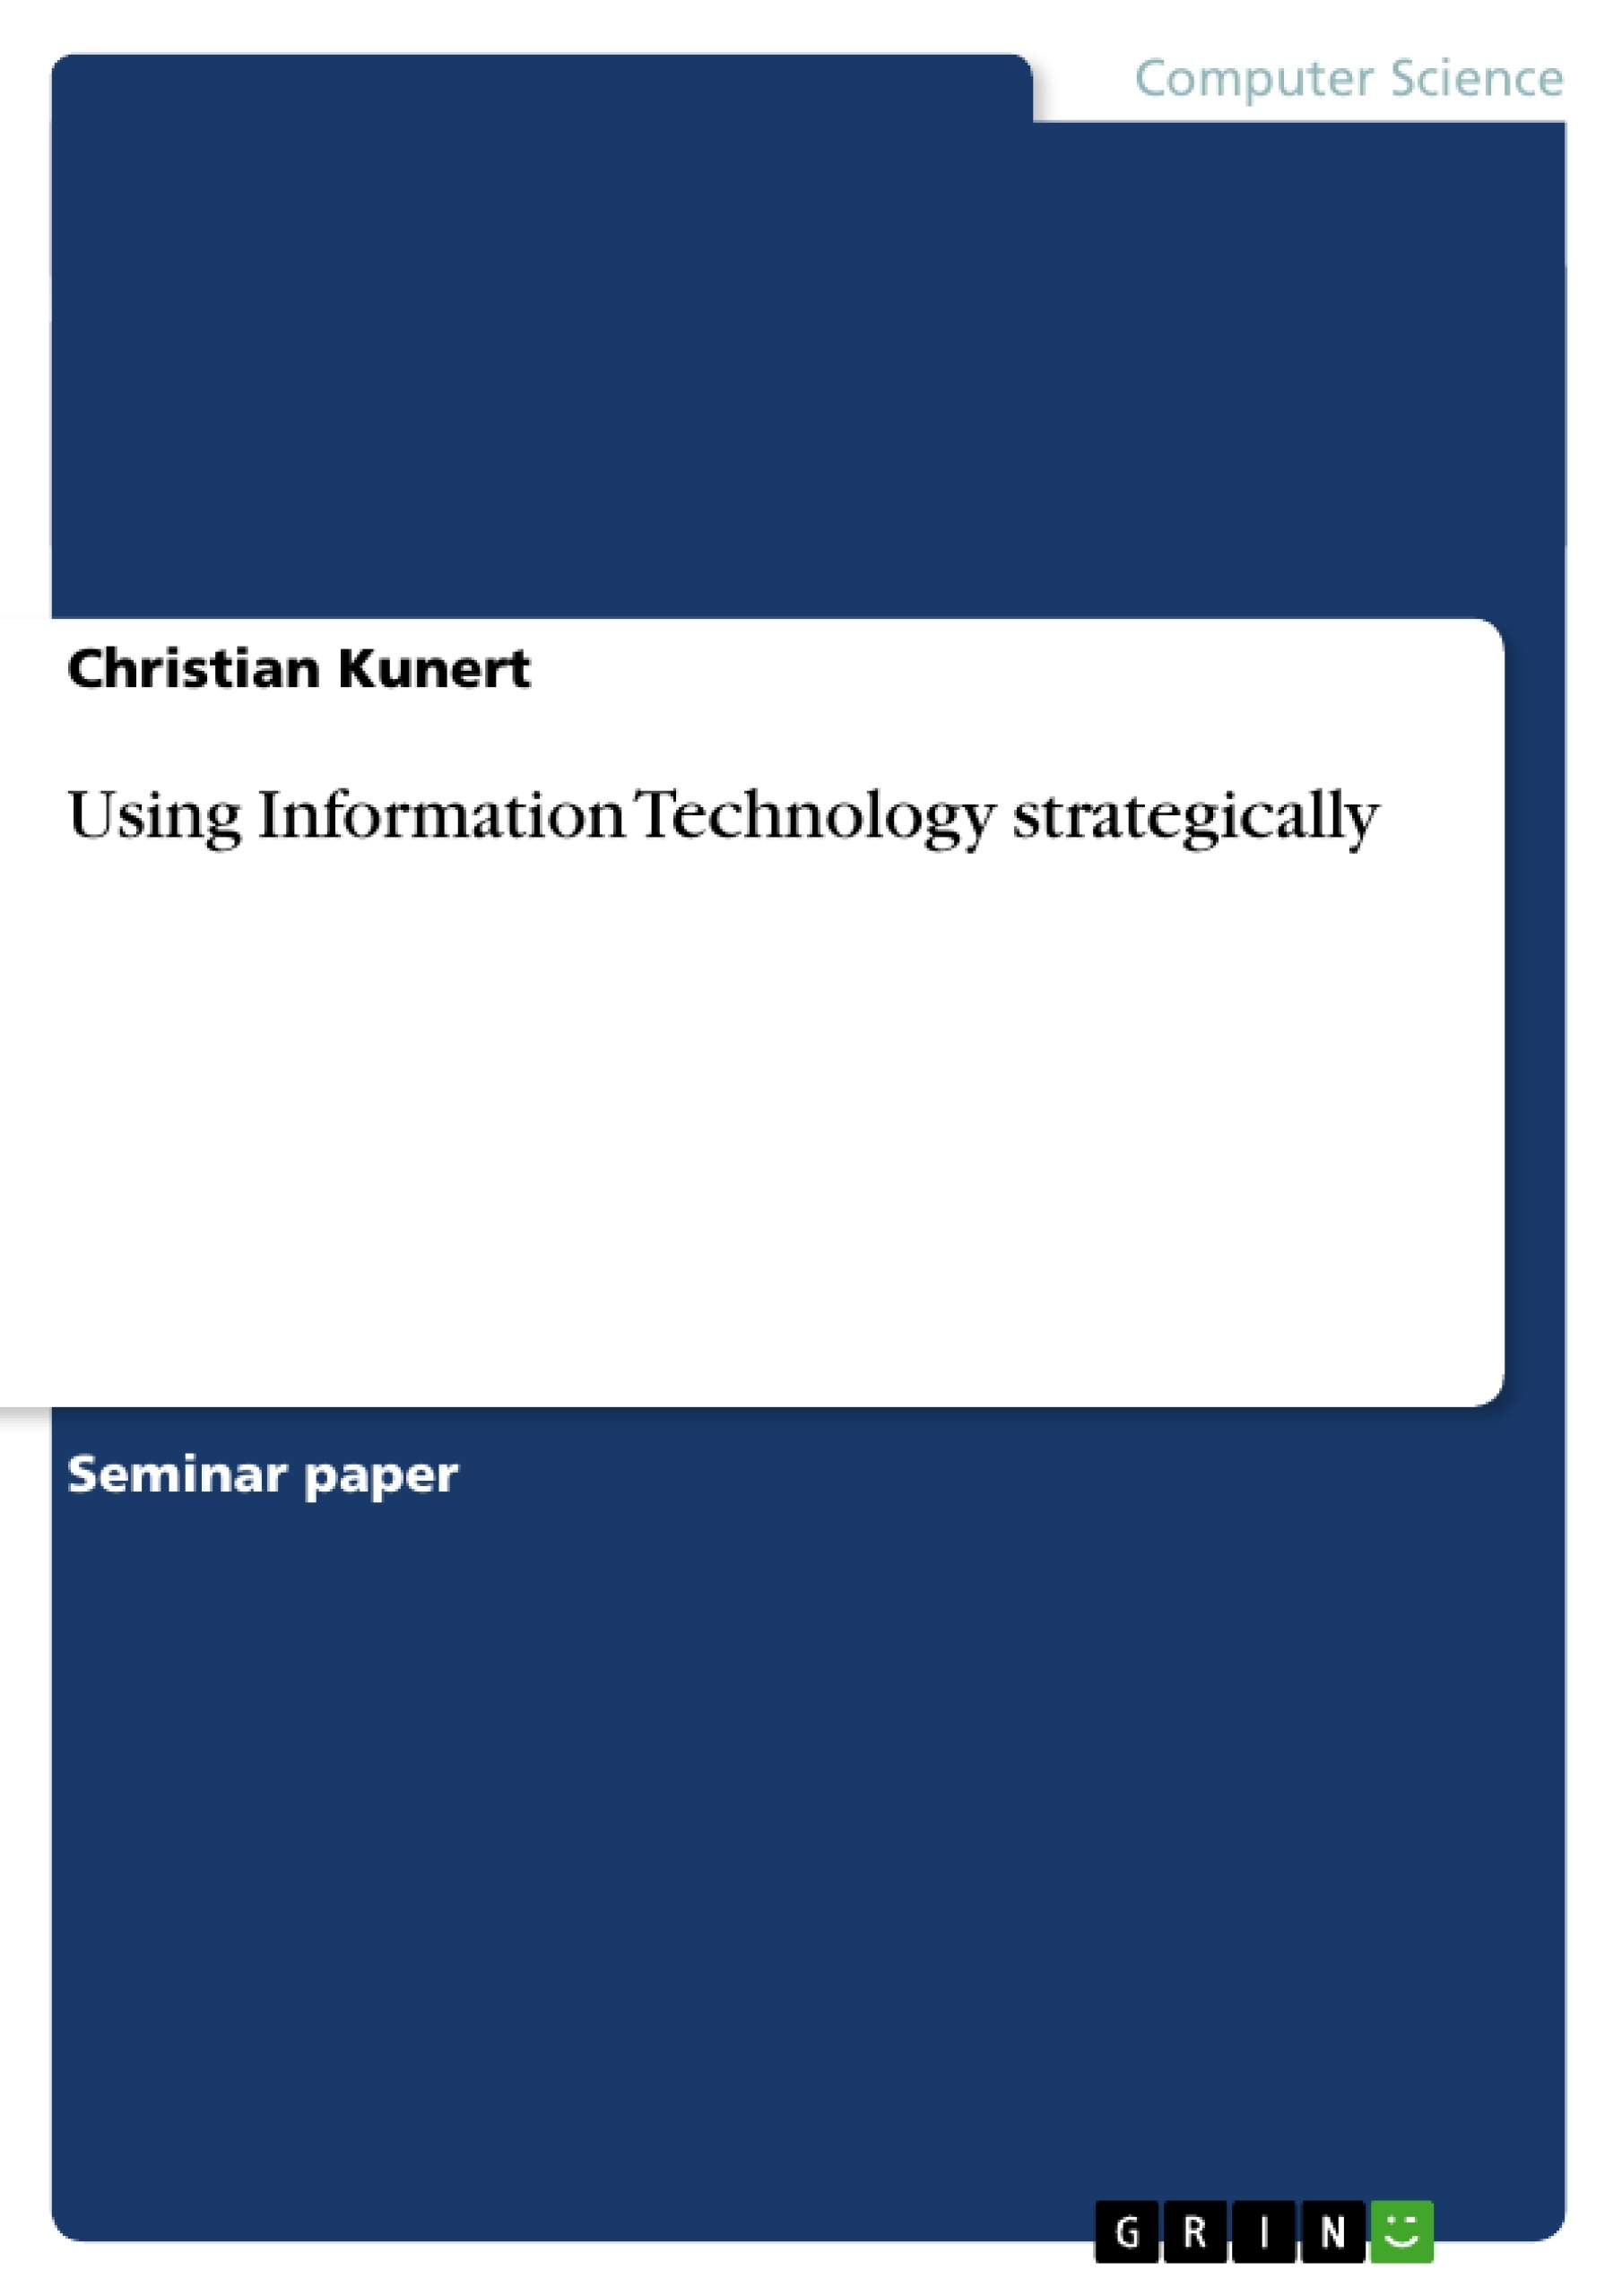 Title: Using Information Technology strategically